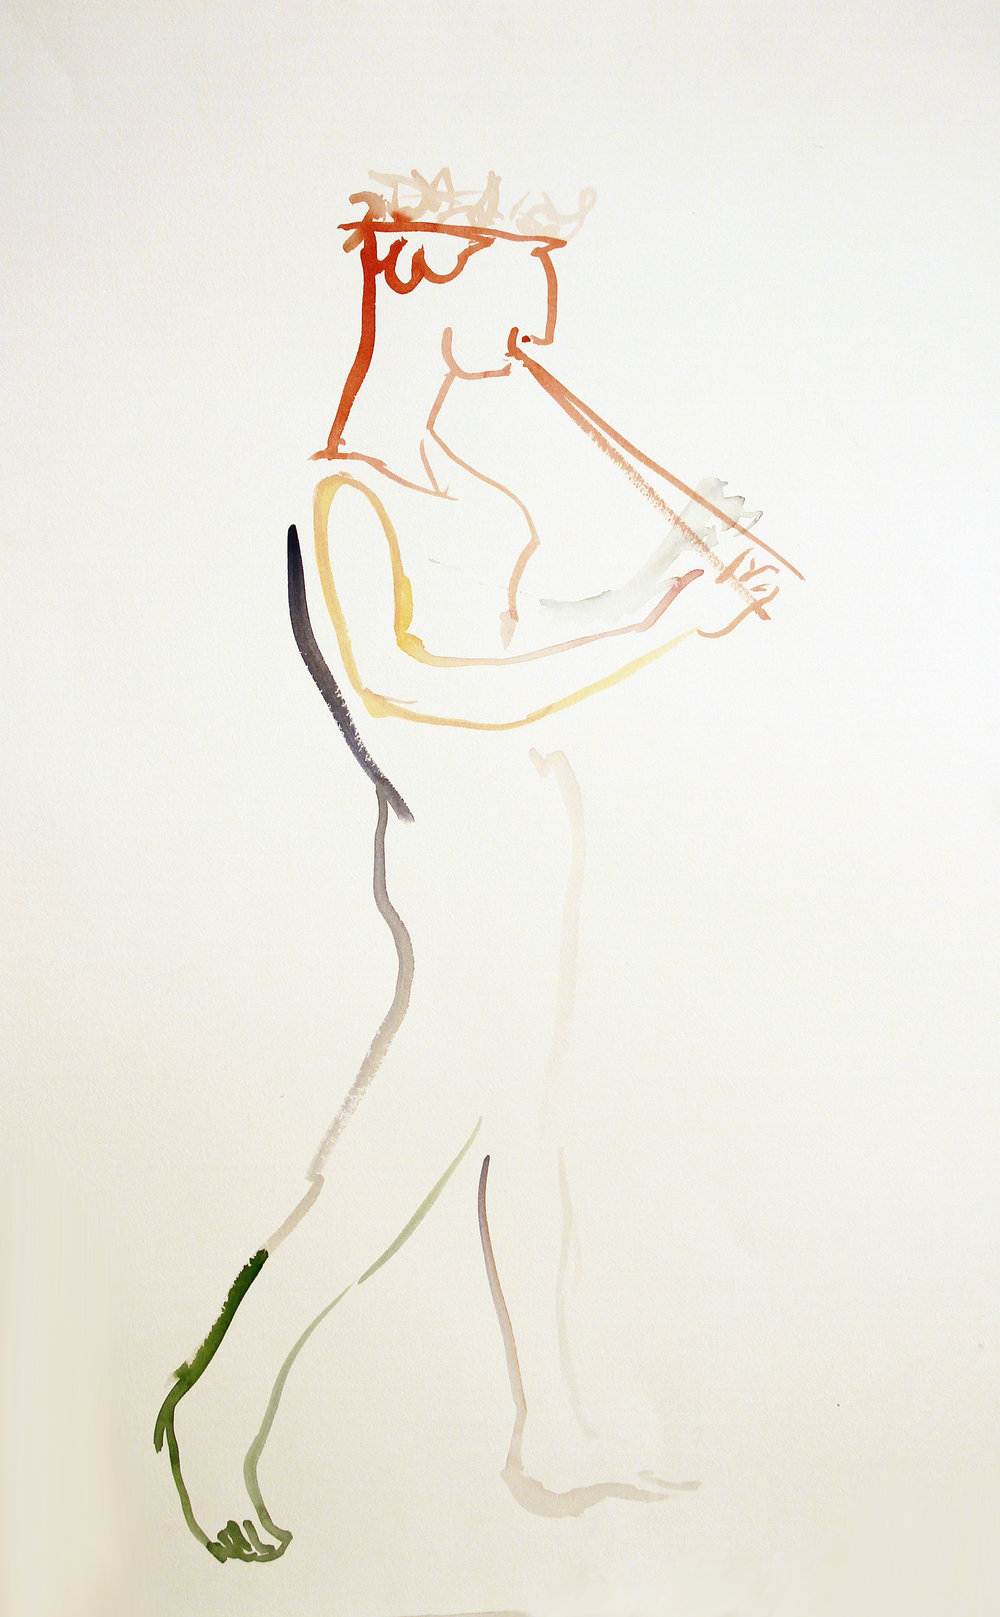 CELEBRATION Watercolor on Paper 30 x 22 inches (76 x 56 cm)